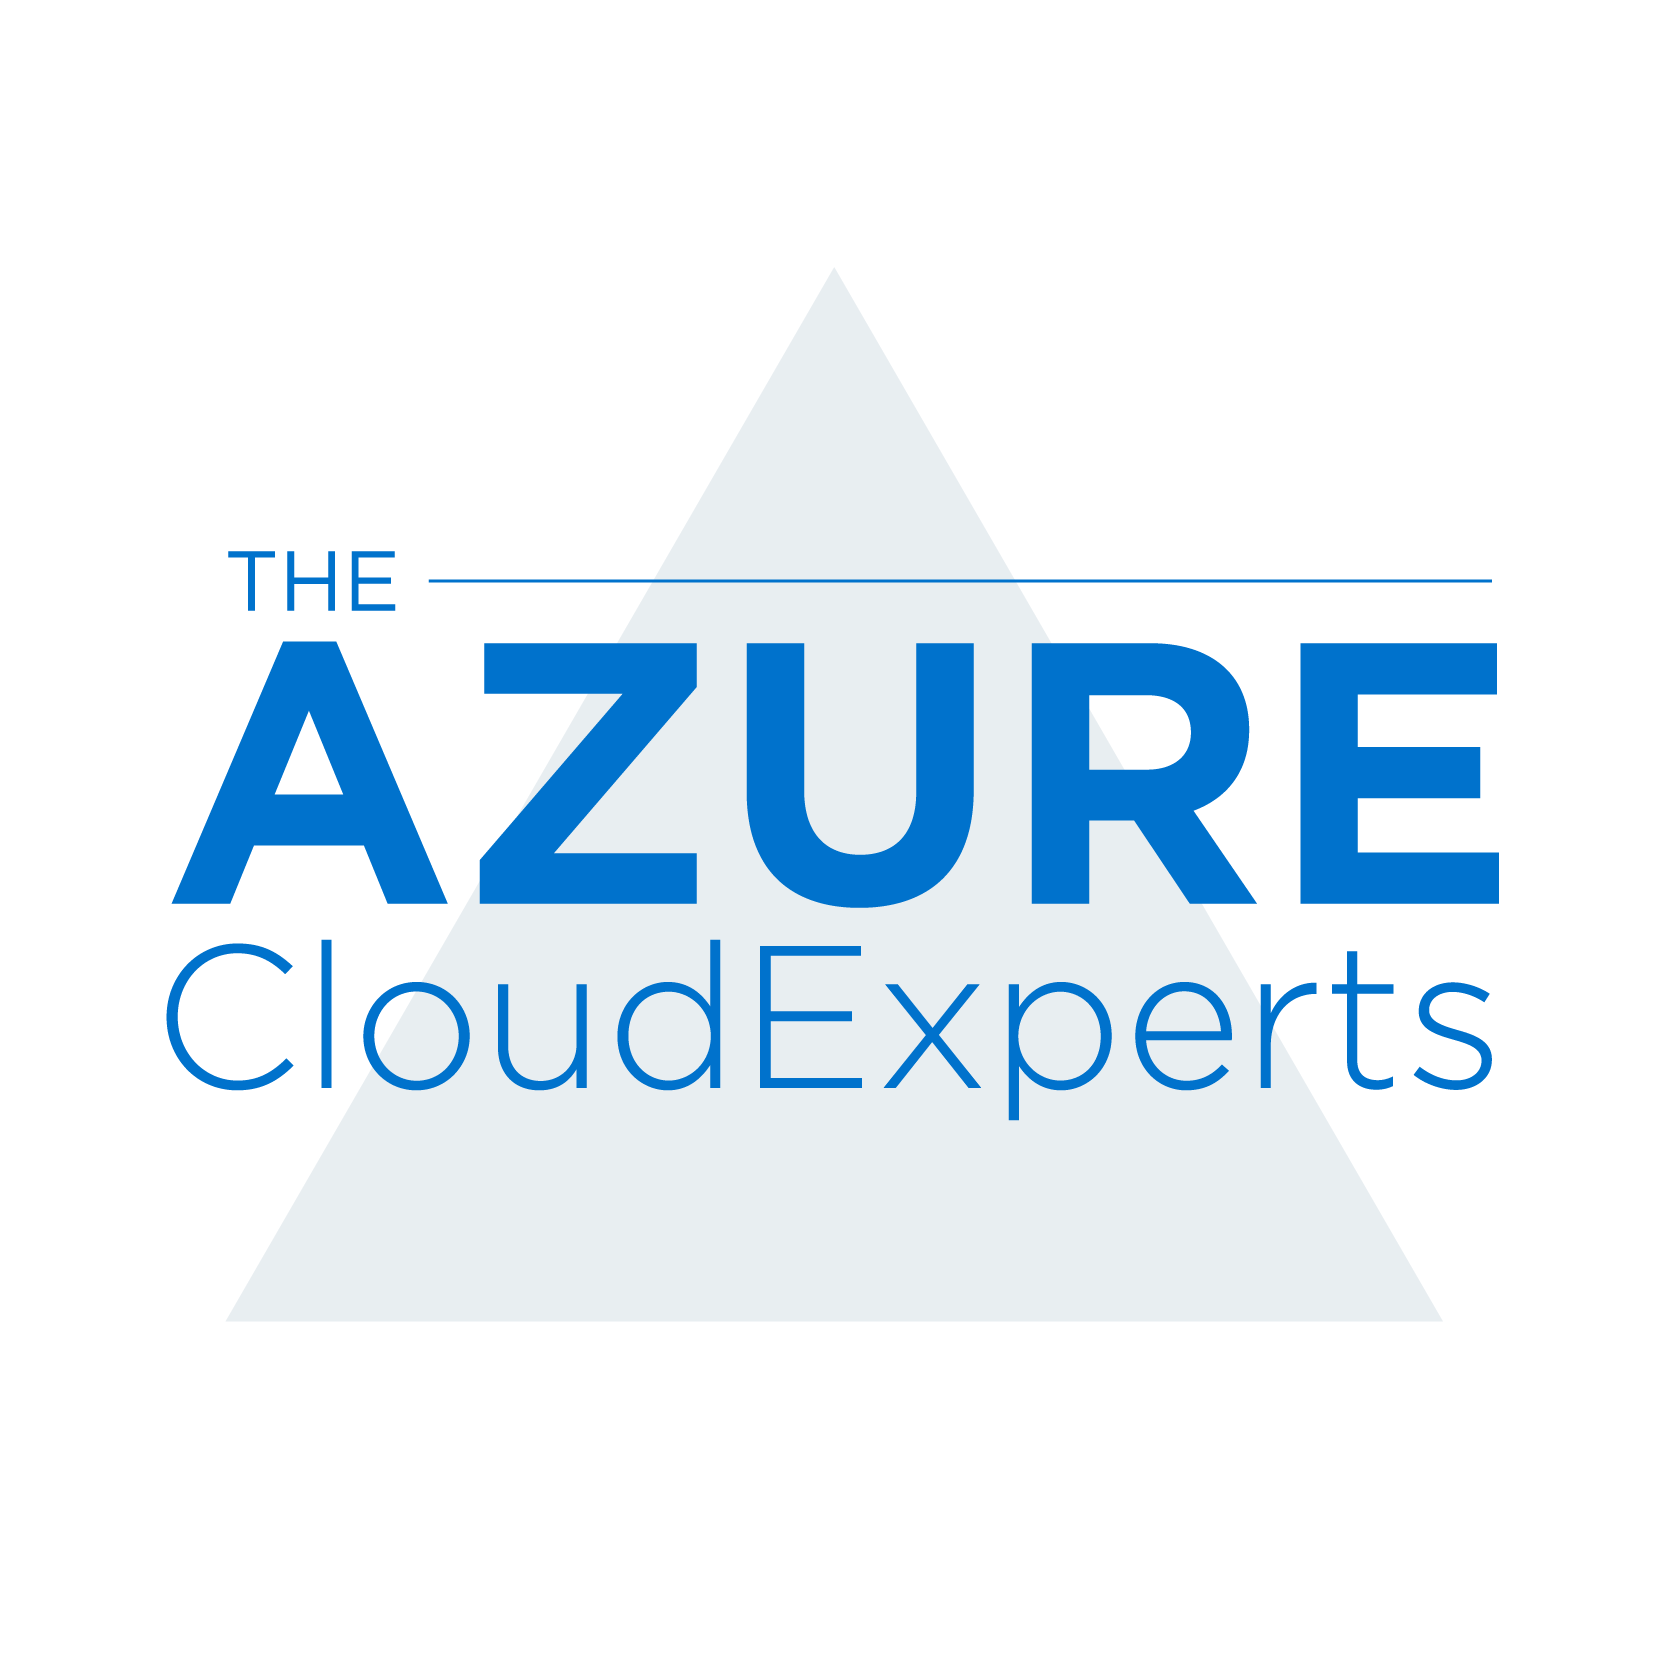 The Azure Cloud Experts Logo